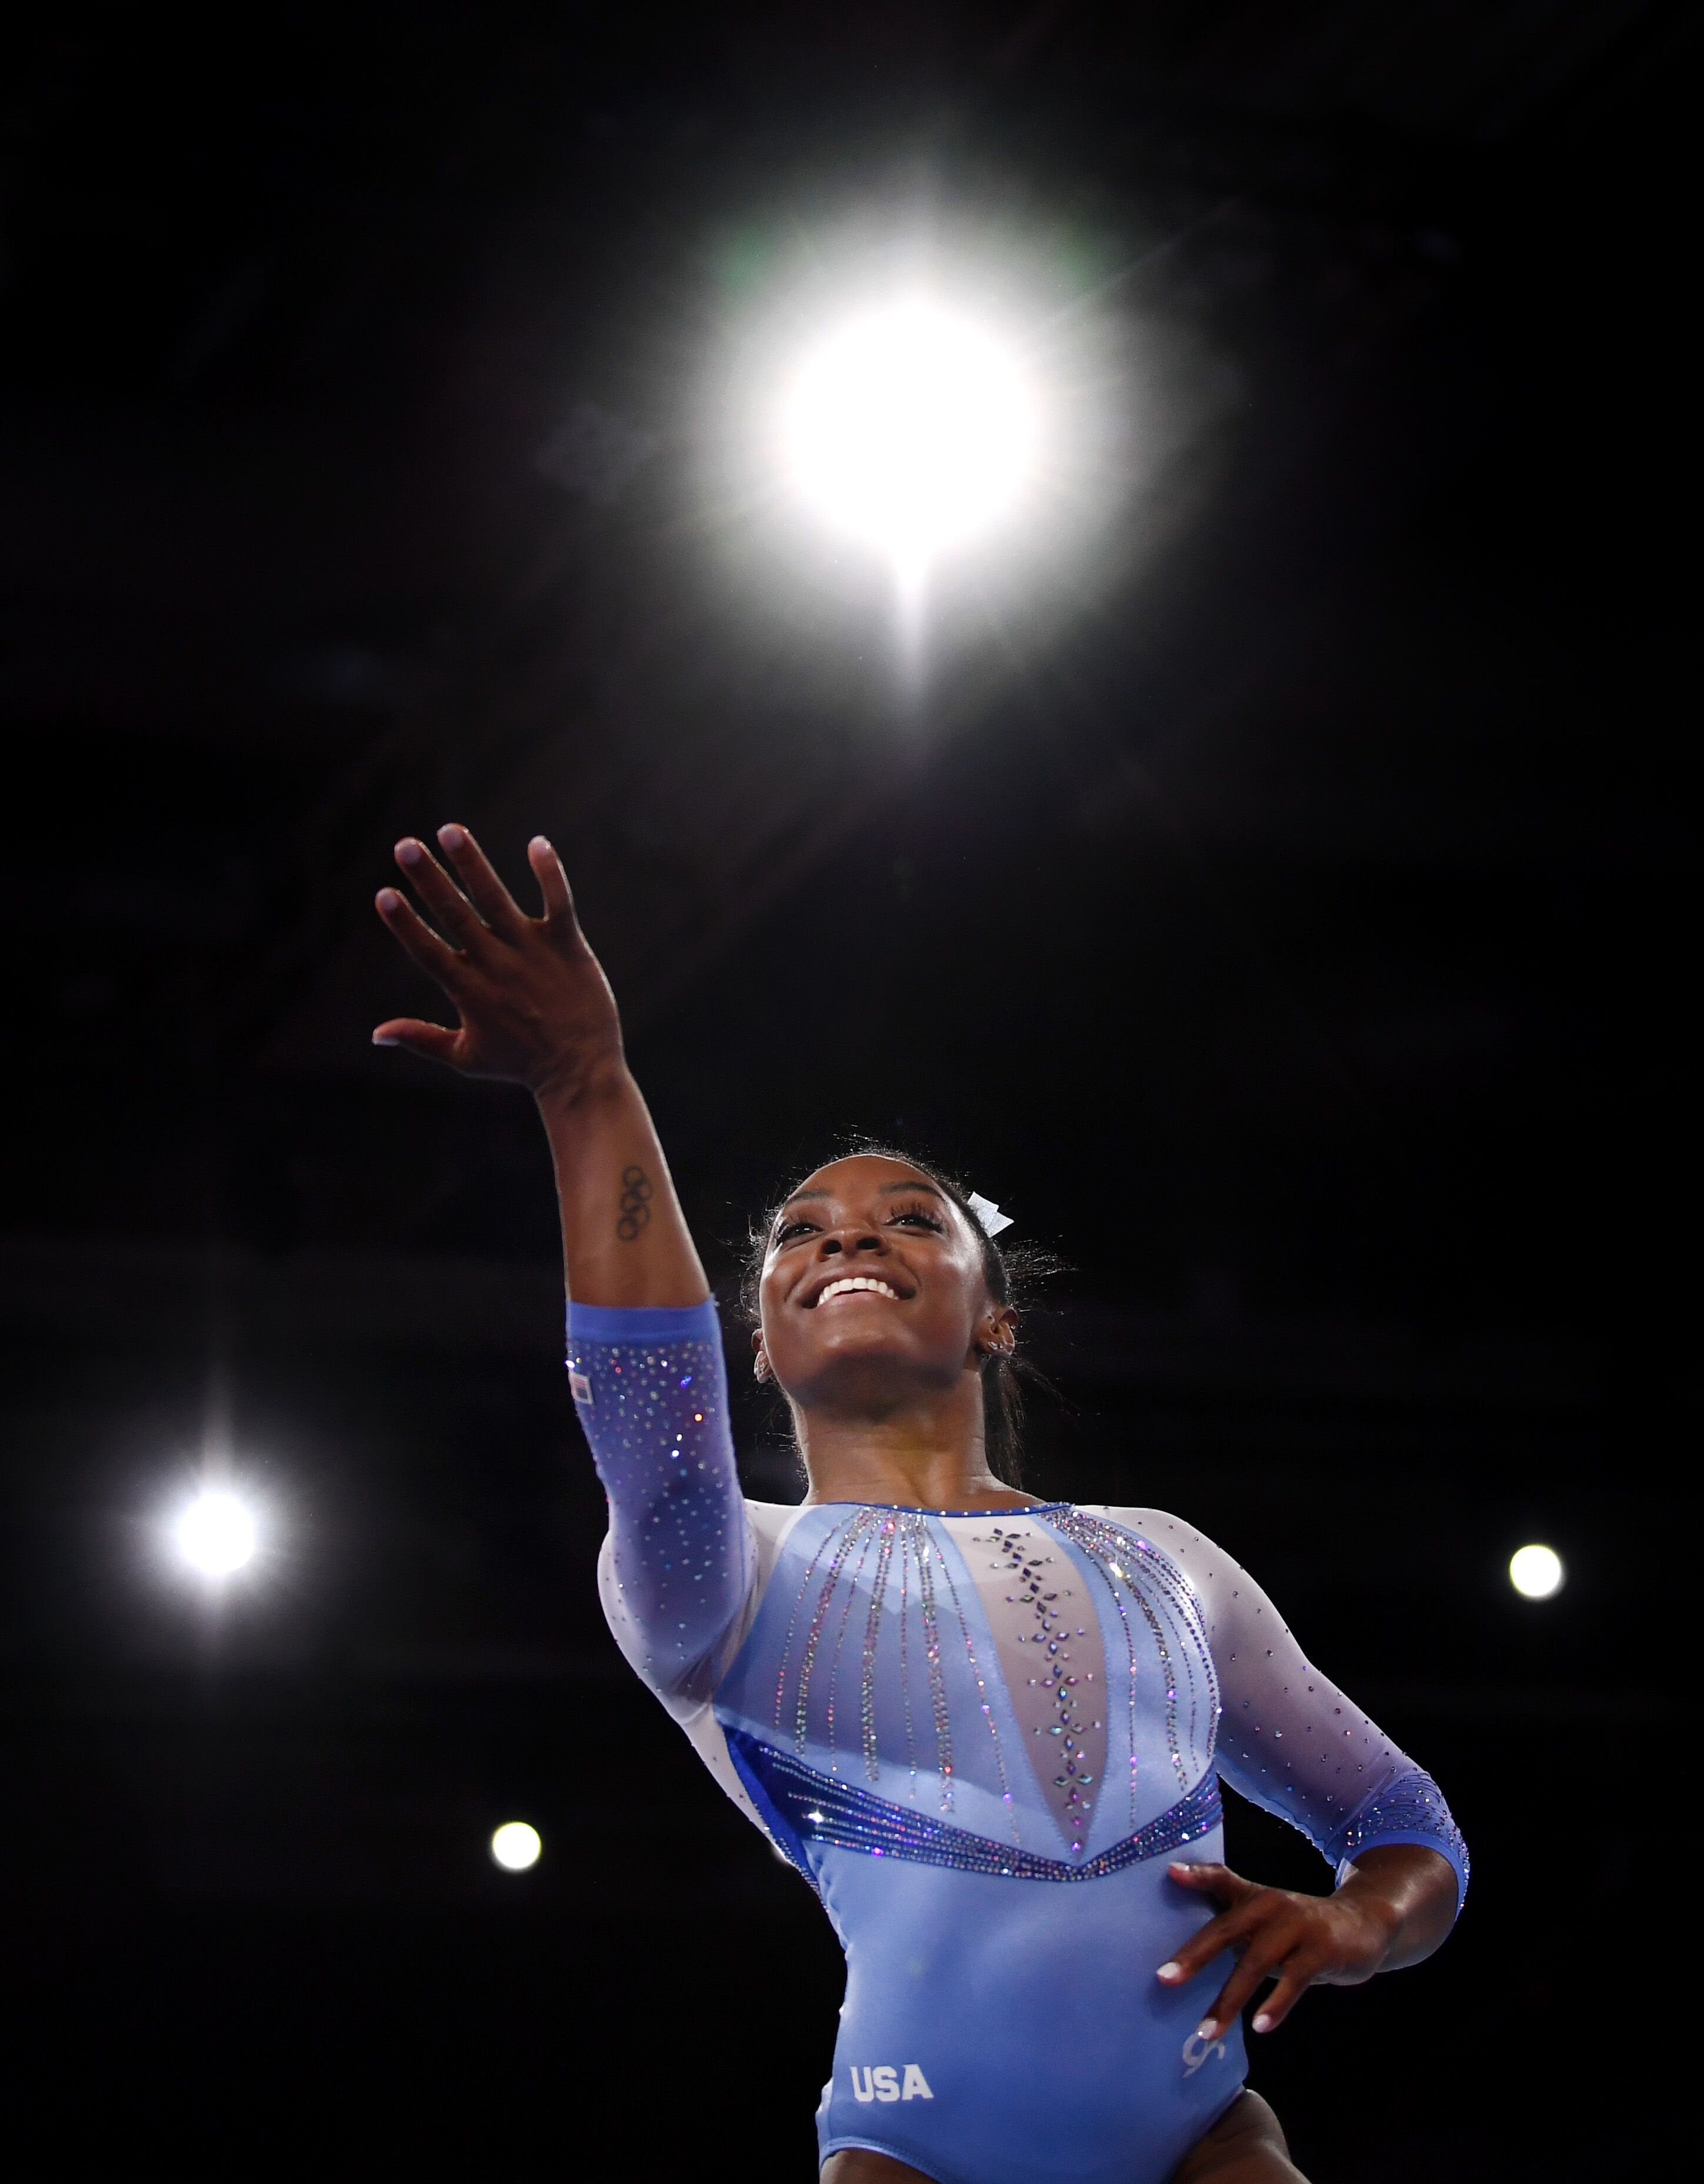 Simone Biles performing at the Stuttgard World Championship/ Source: Getty Images